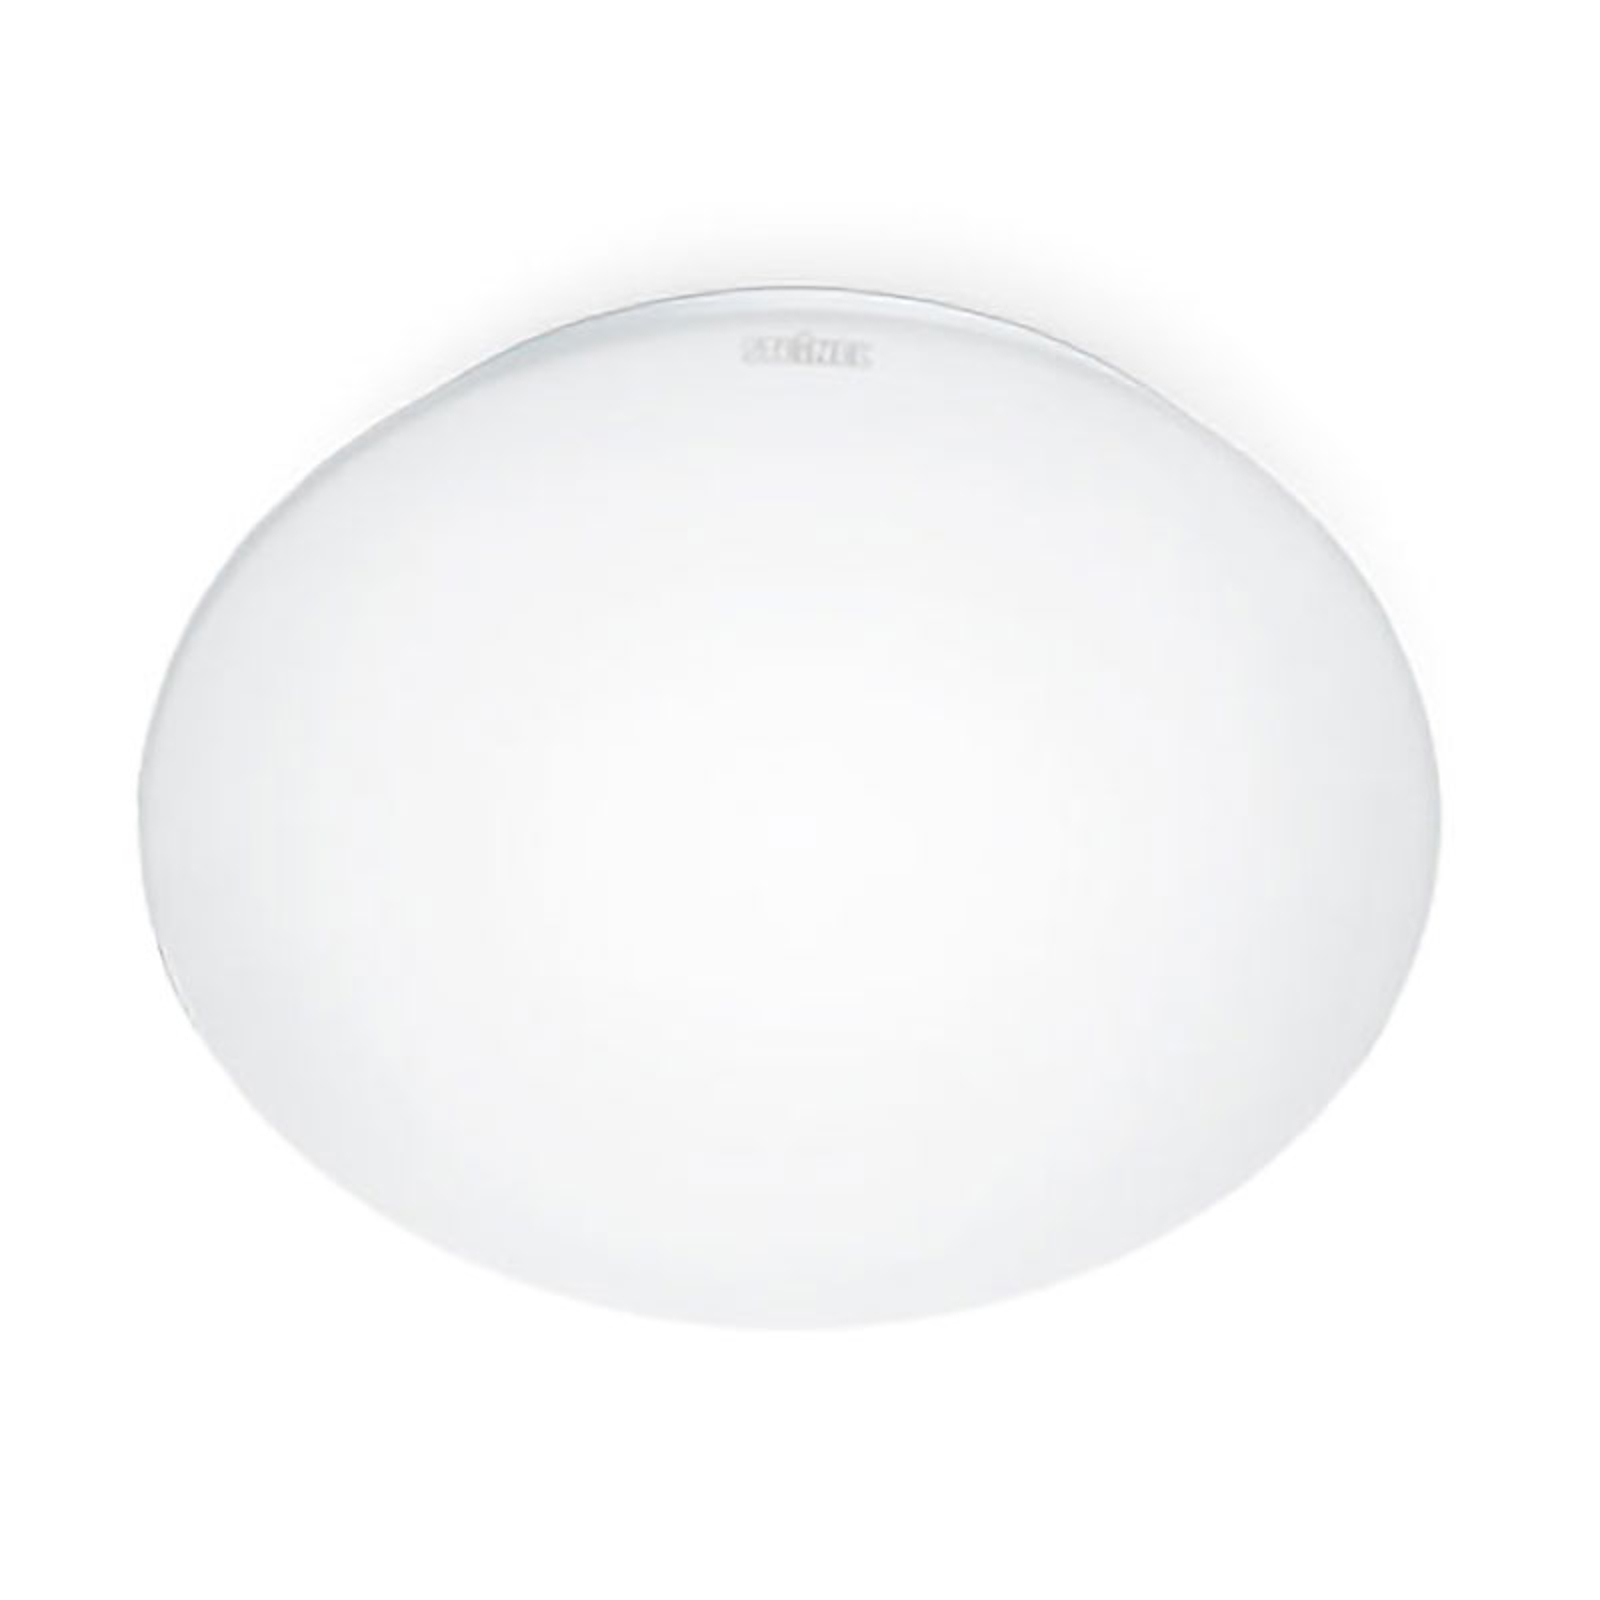 LED-taklampe RS 16 med sensor i glass